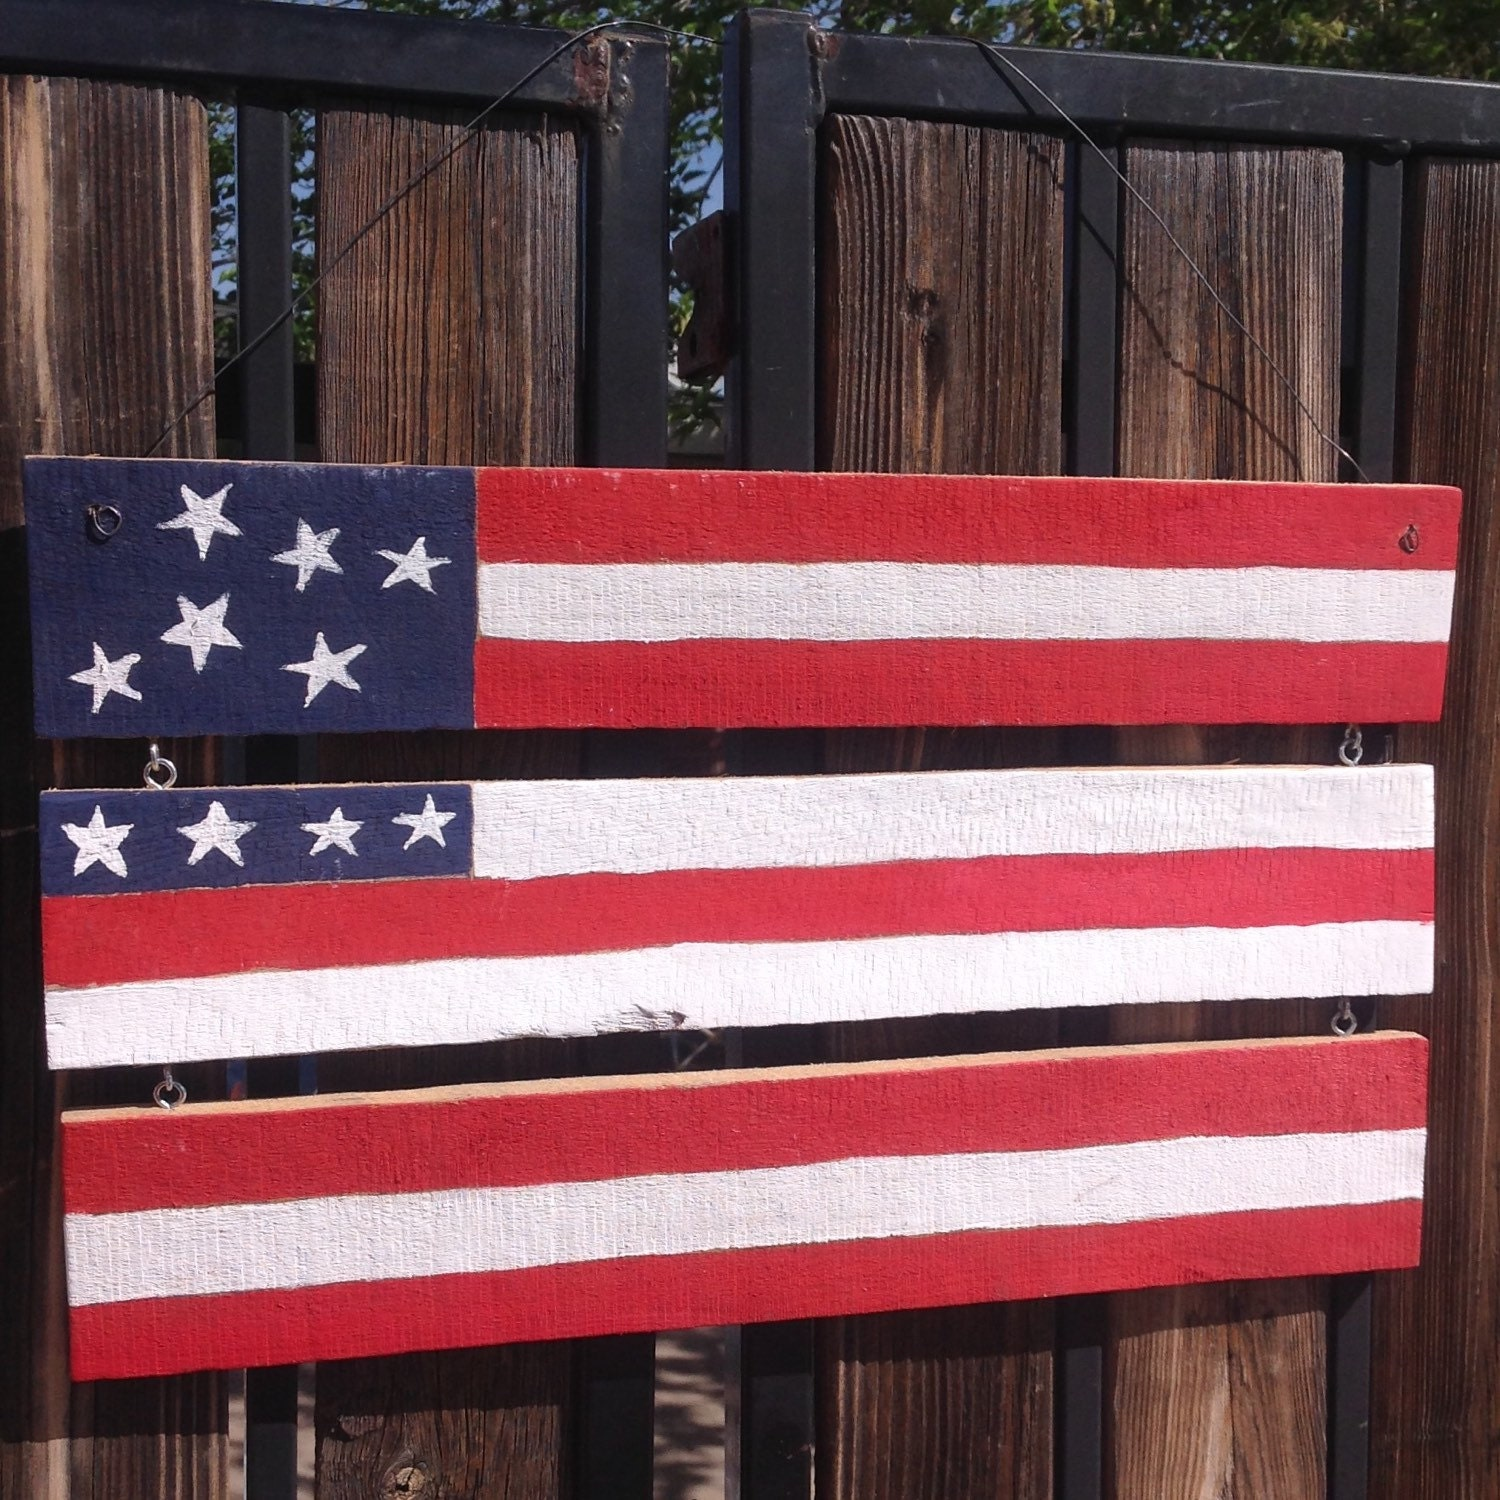 American Flag Pallet Home Decor 4th Of July Decorative Sign Home Decorators Catalog Best Ideas of Home Decor and Design [homedecoratorscatalog.us]